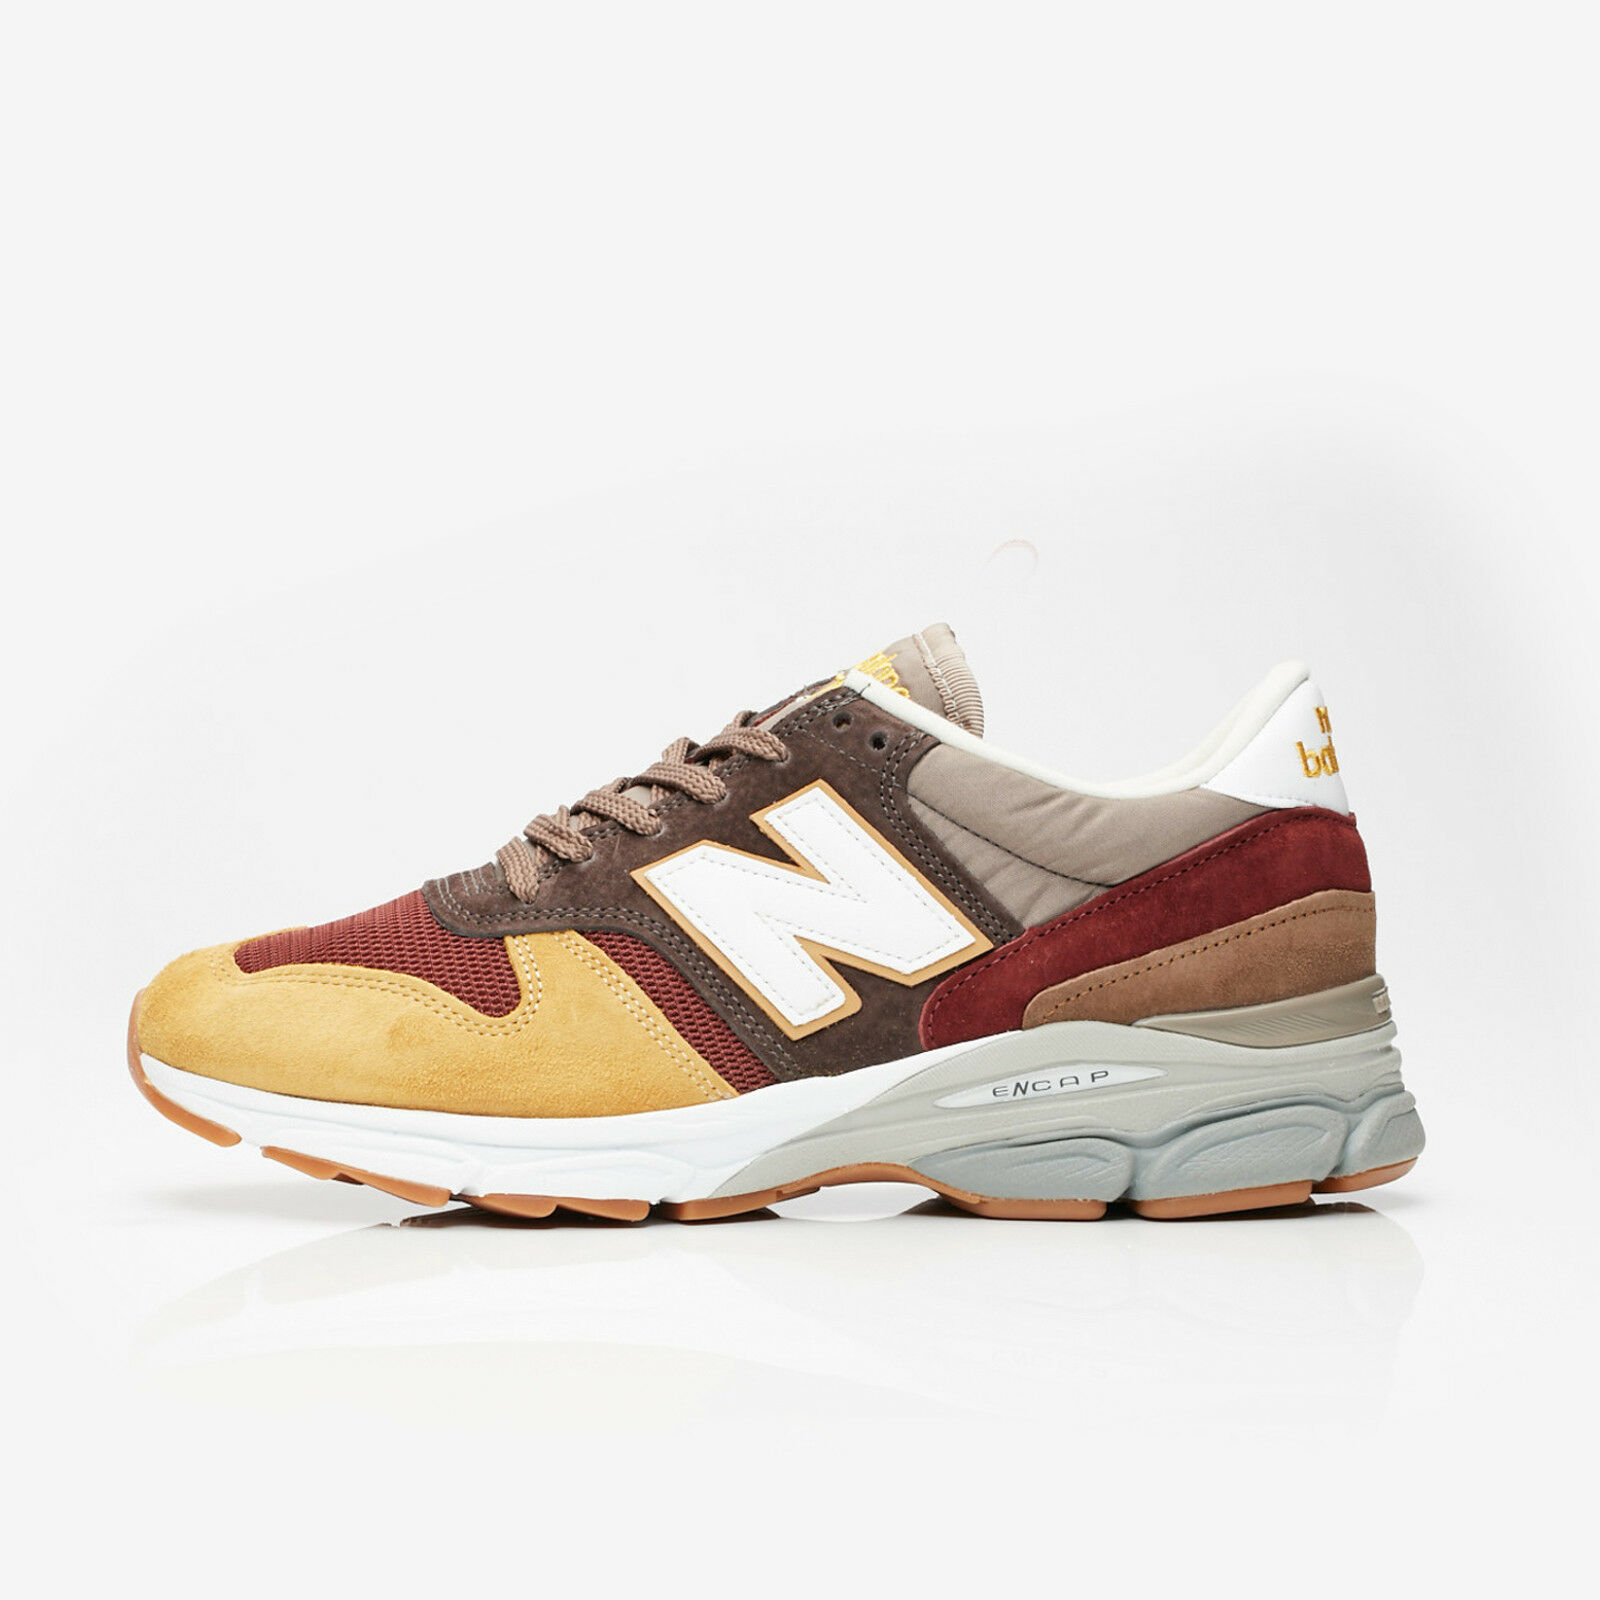 NEW BALANCE M770.9FT SOLWAY EXCURSION M770 MULTICOLOR M990 M991 770 MADE IN UK